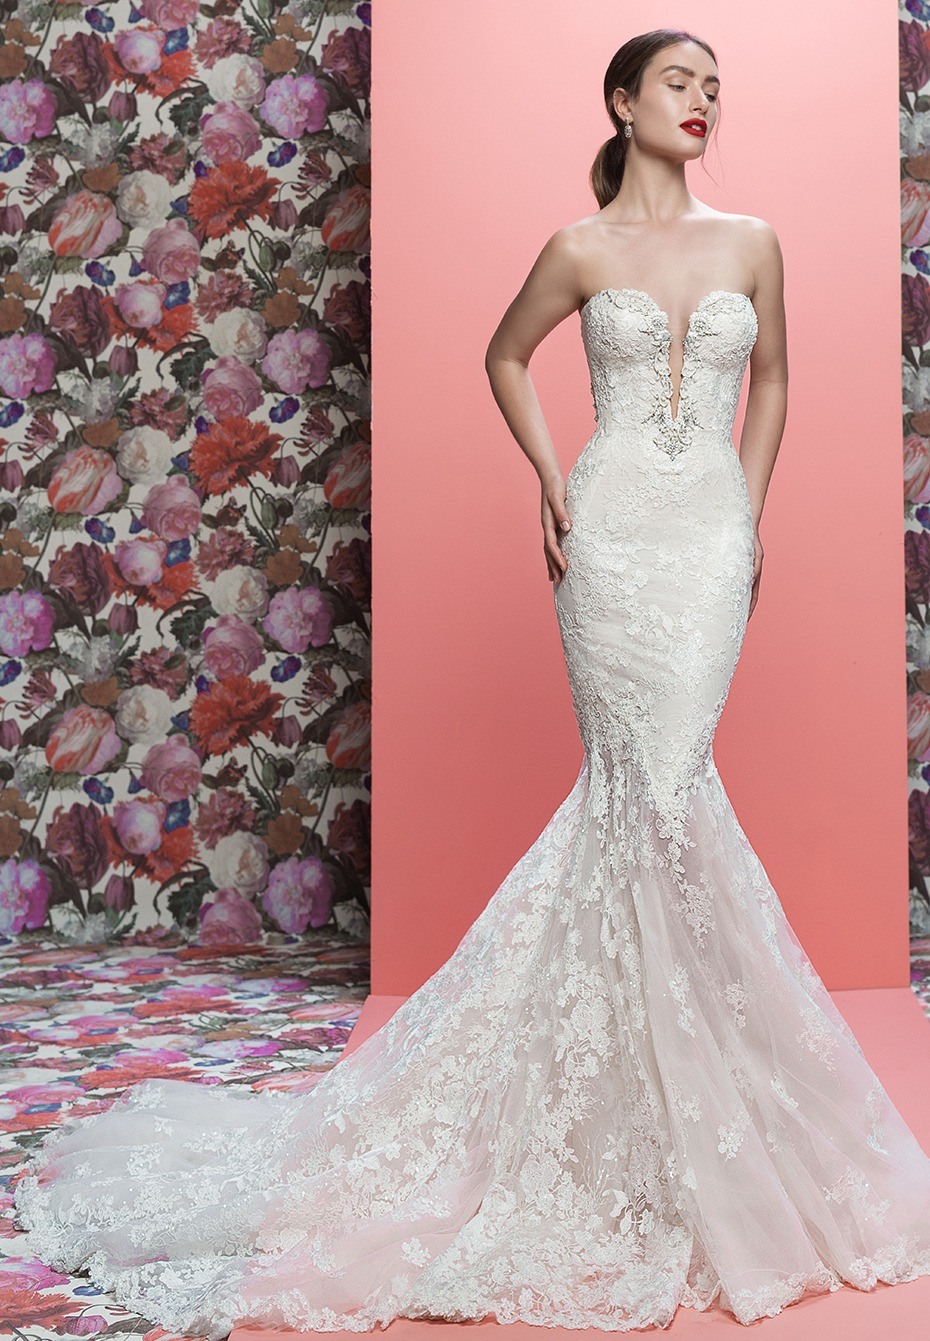 The Lorraine from Galia Lahav  - a strapless weddinggown with silver details